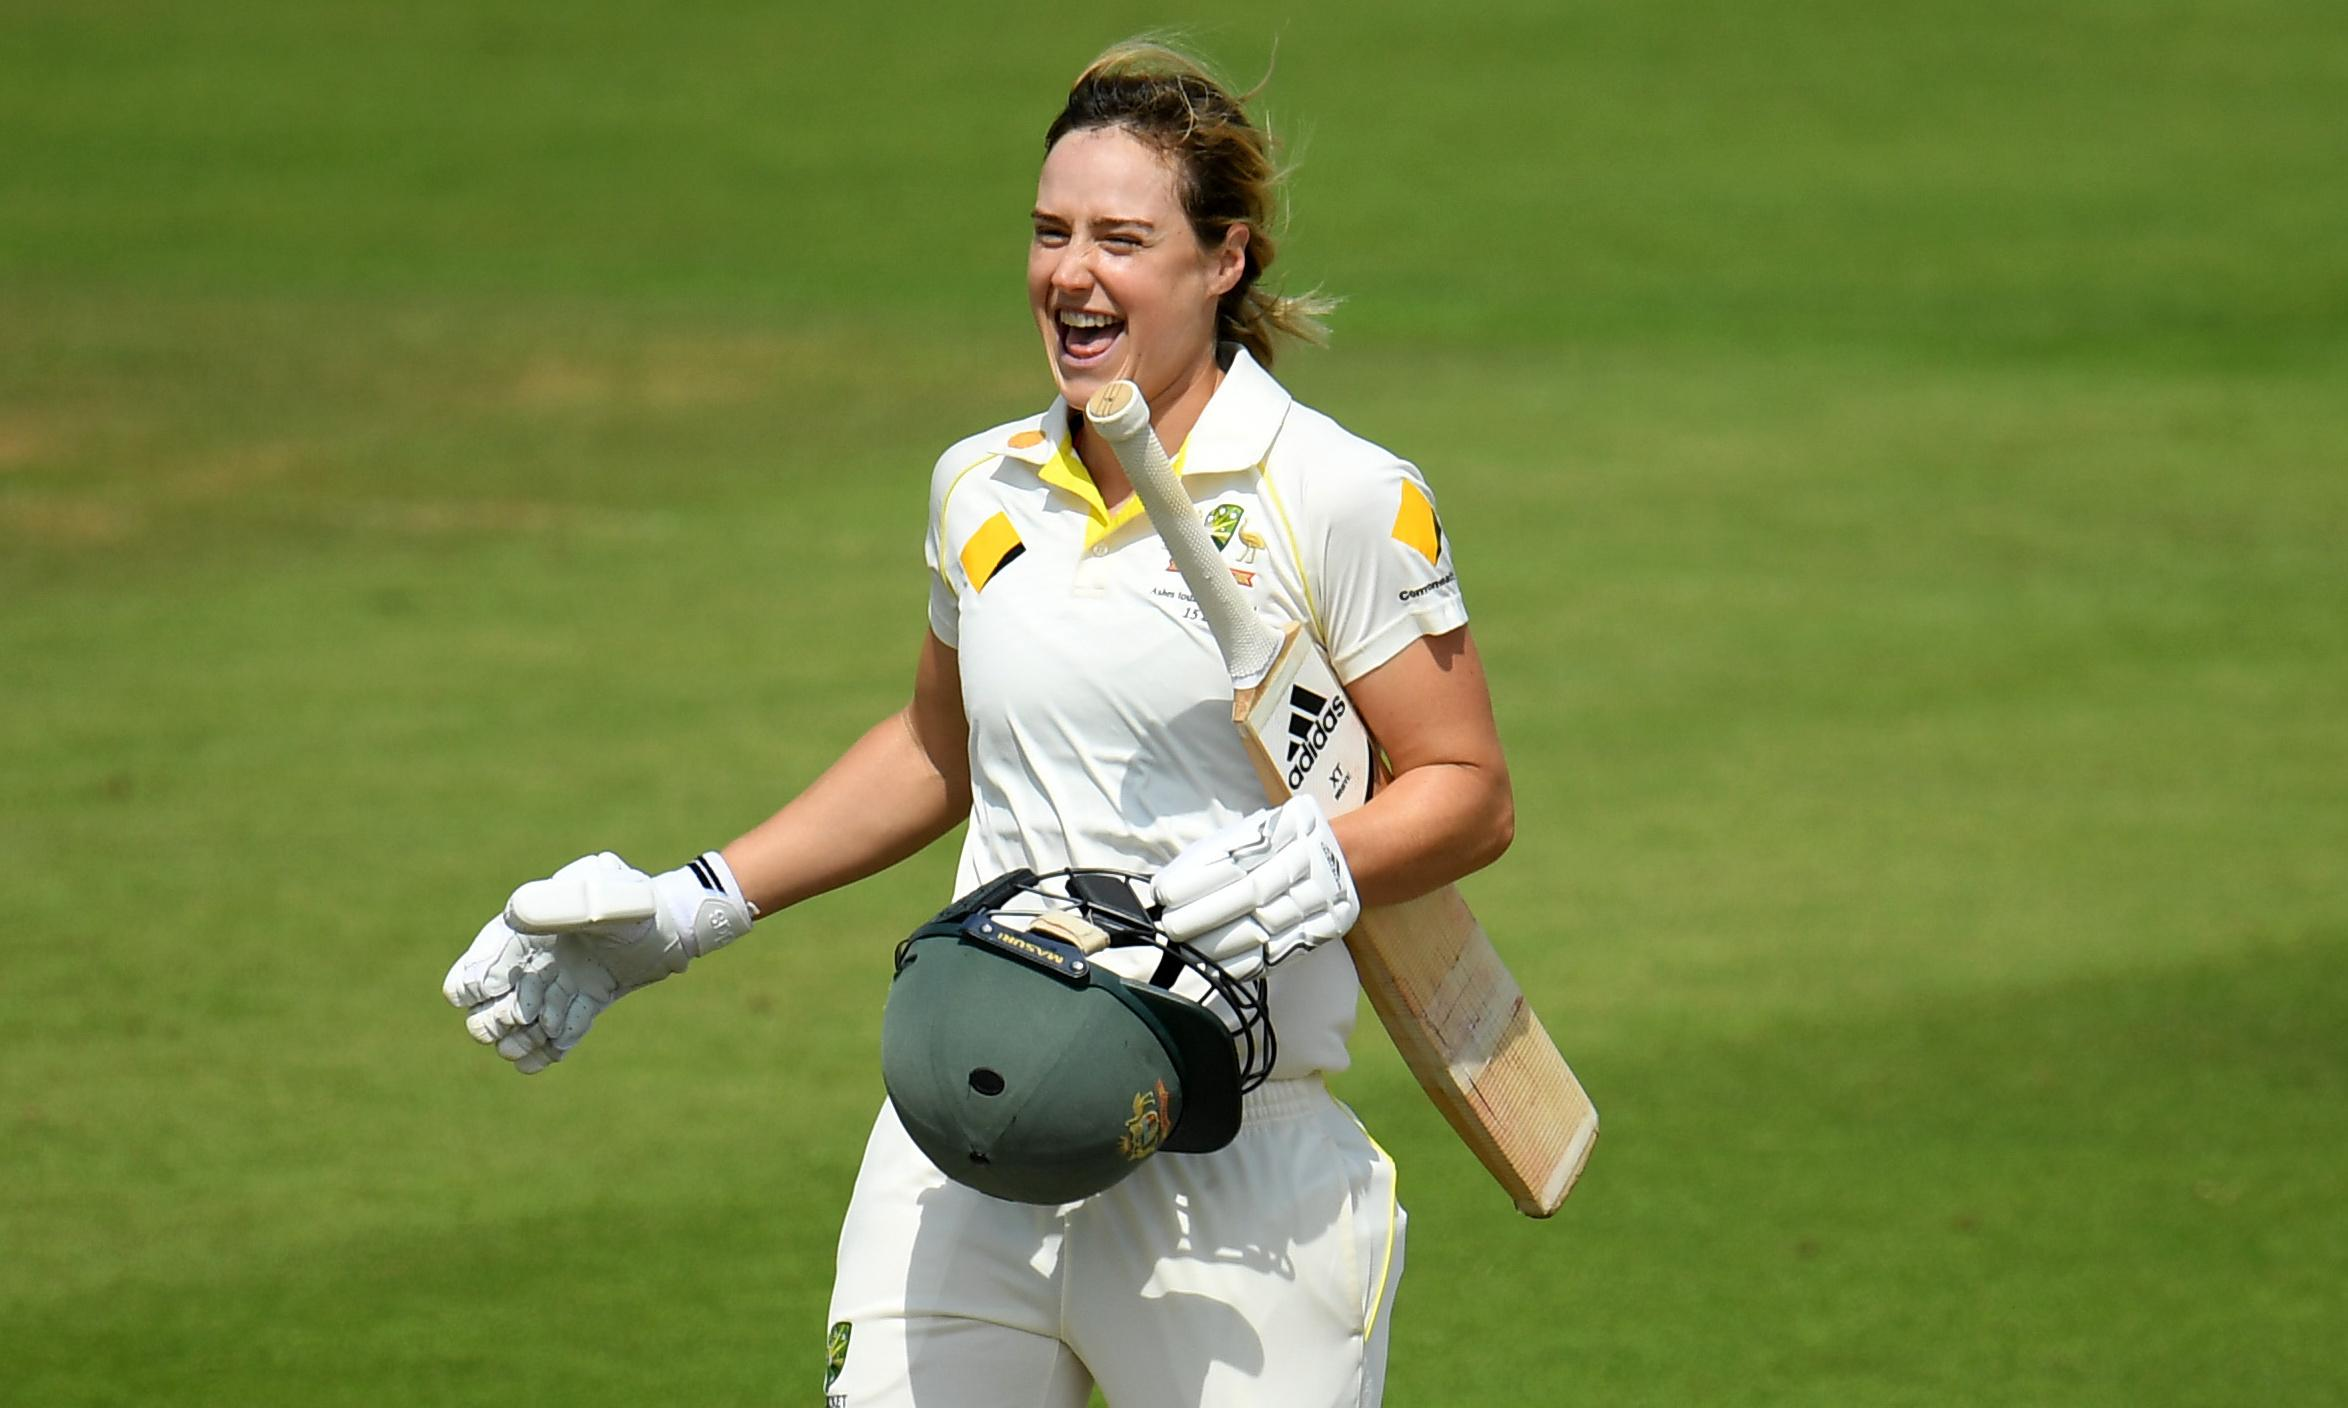 Ellyse Perry is a joy to watch. If only we had more opportunities